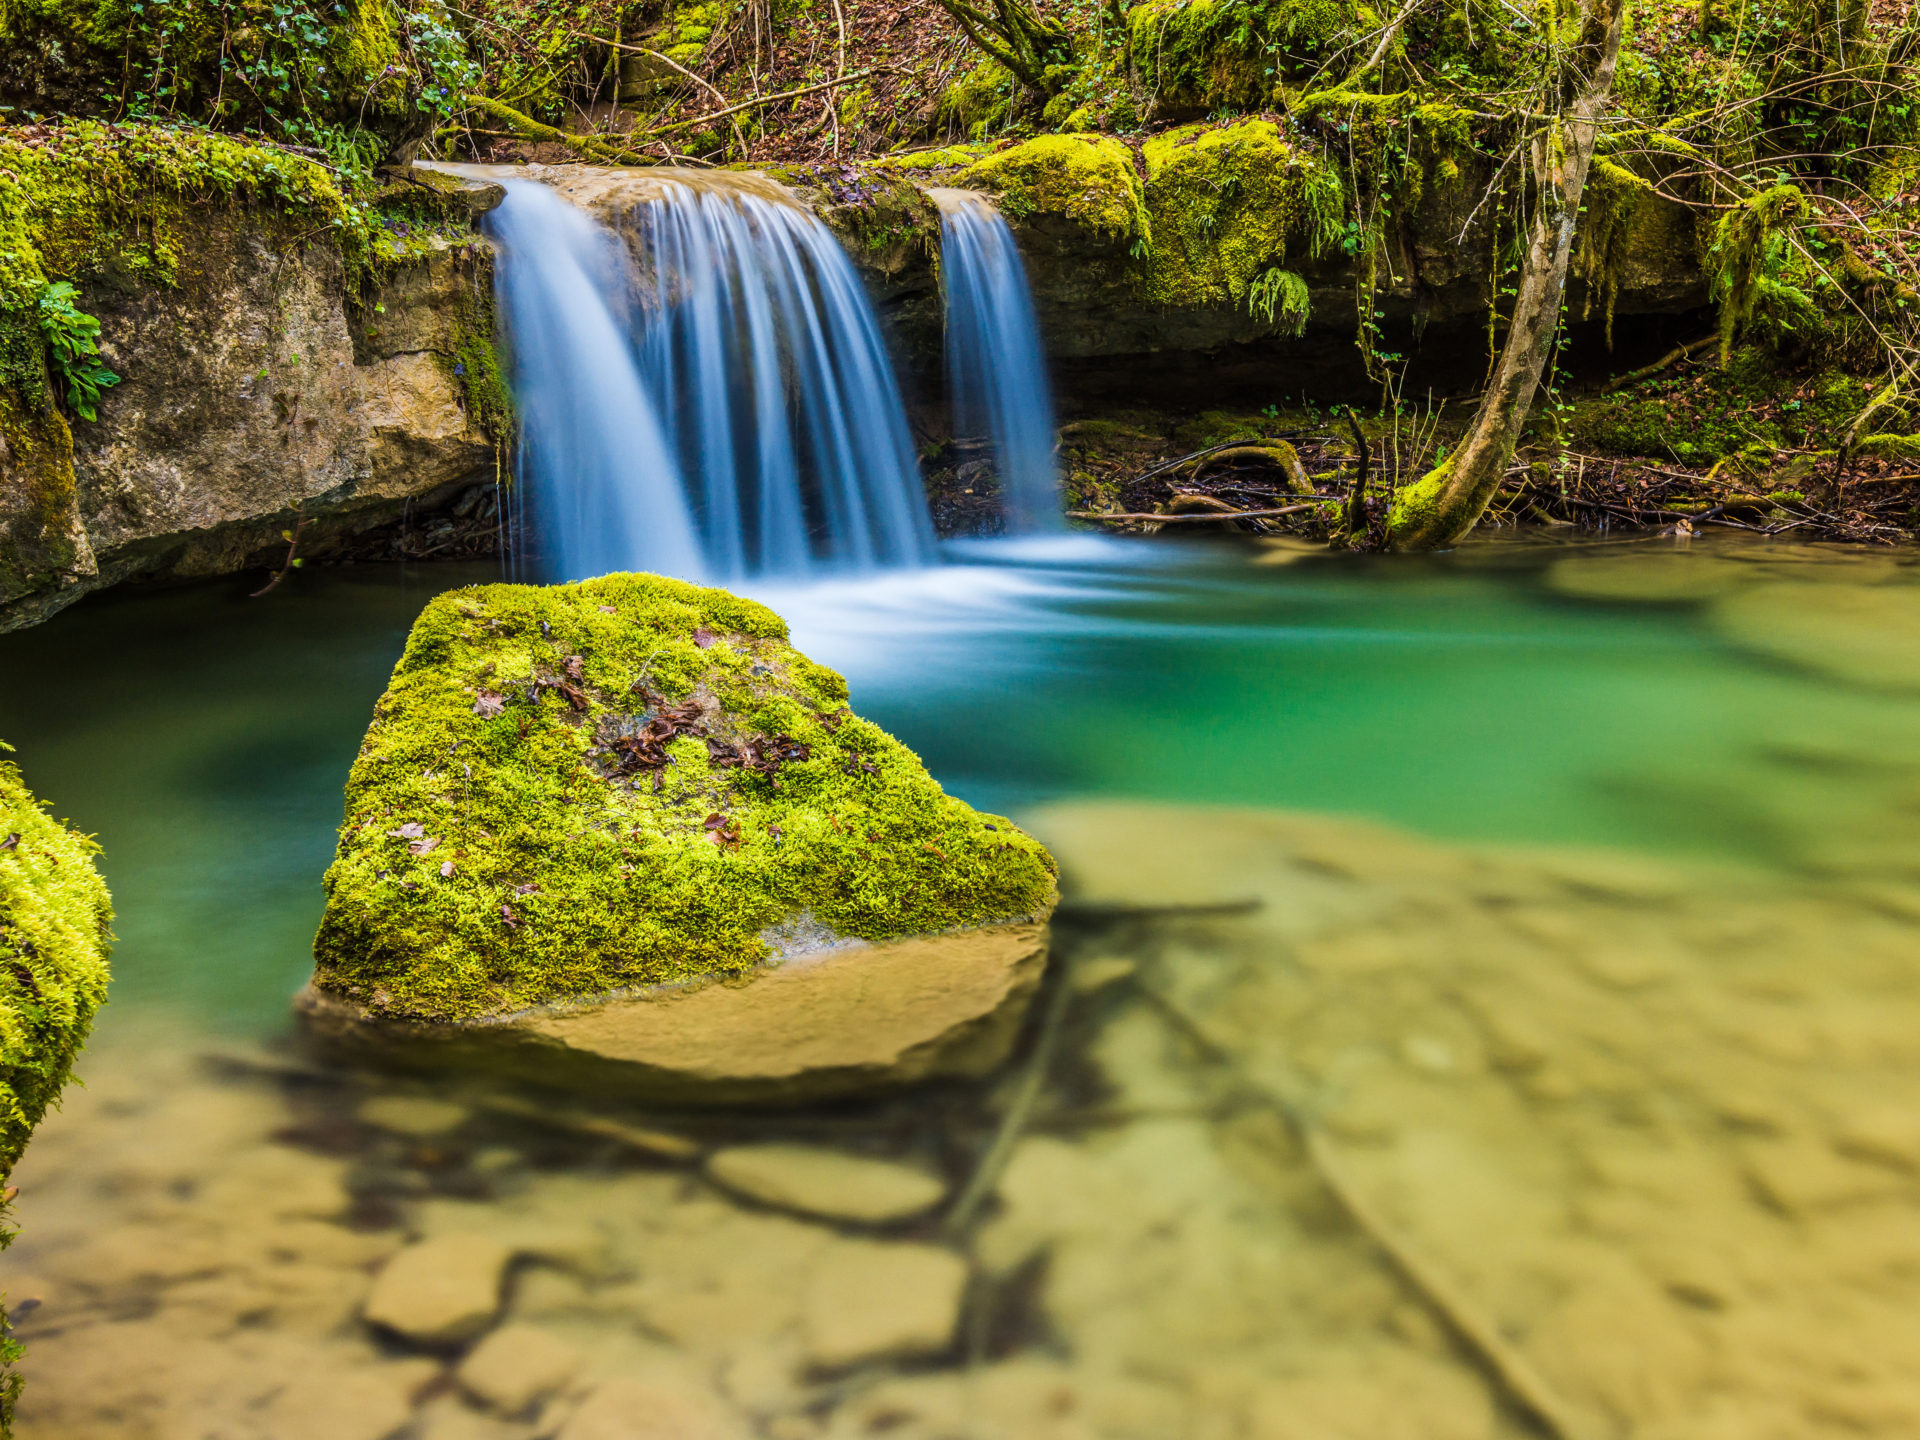 Fall Wallpaper Iphone 5 Nice Small Waterfall Clear Water Rocks With Moss Hd